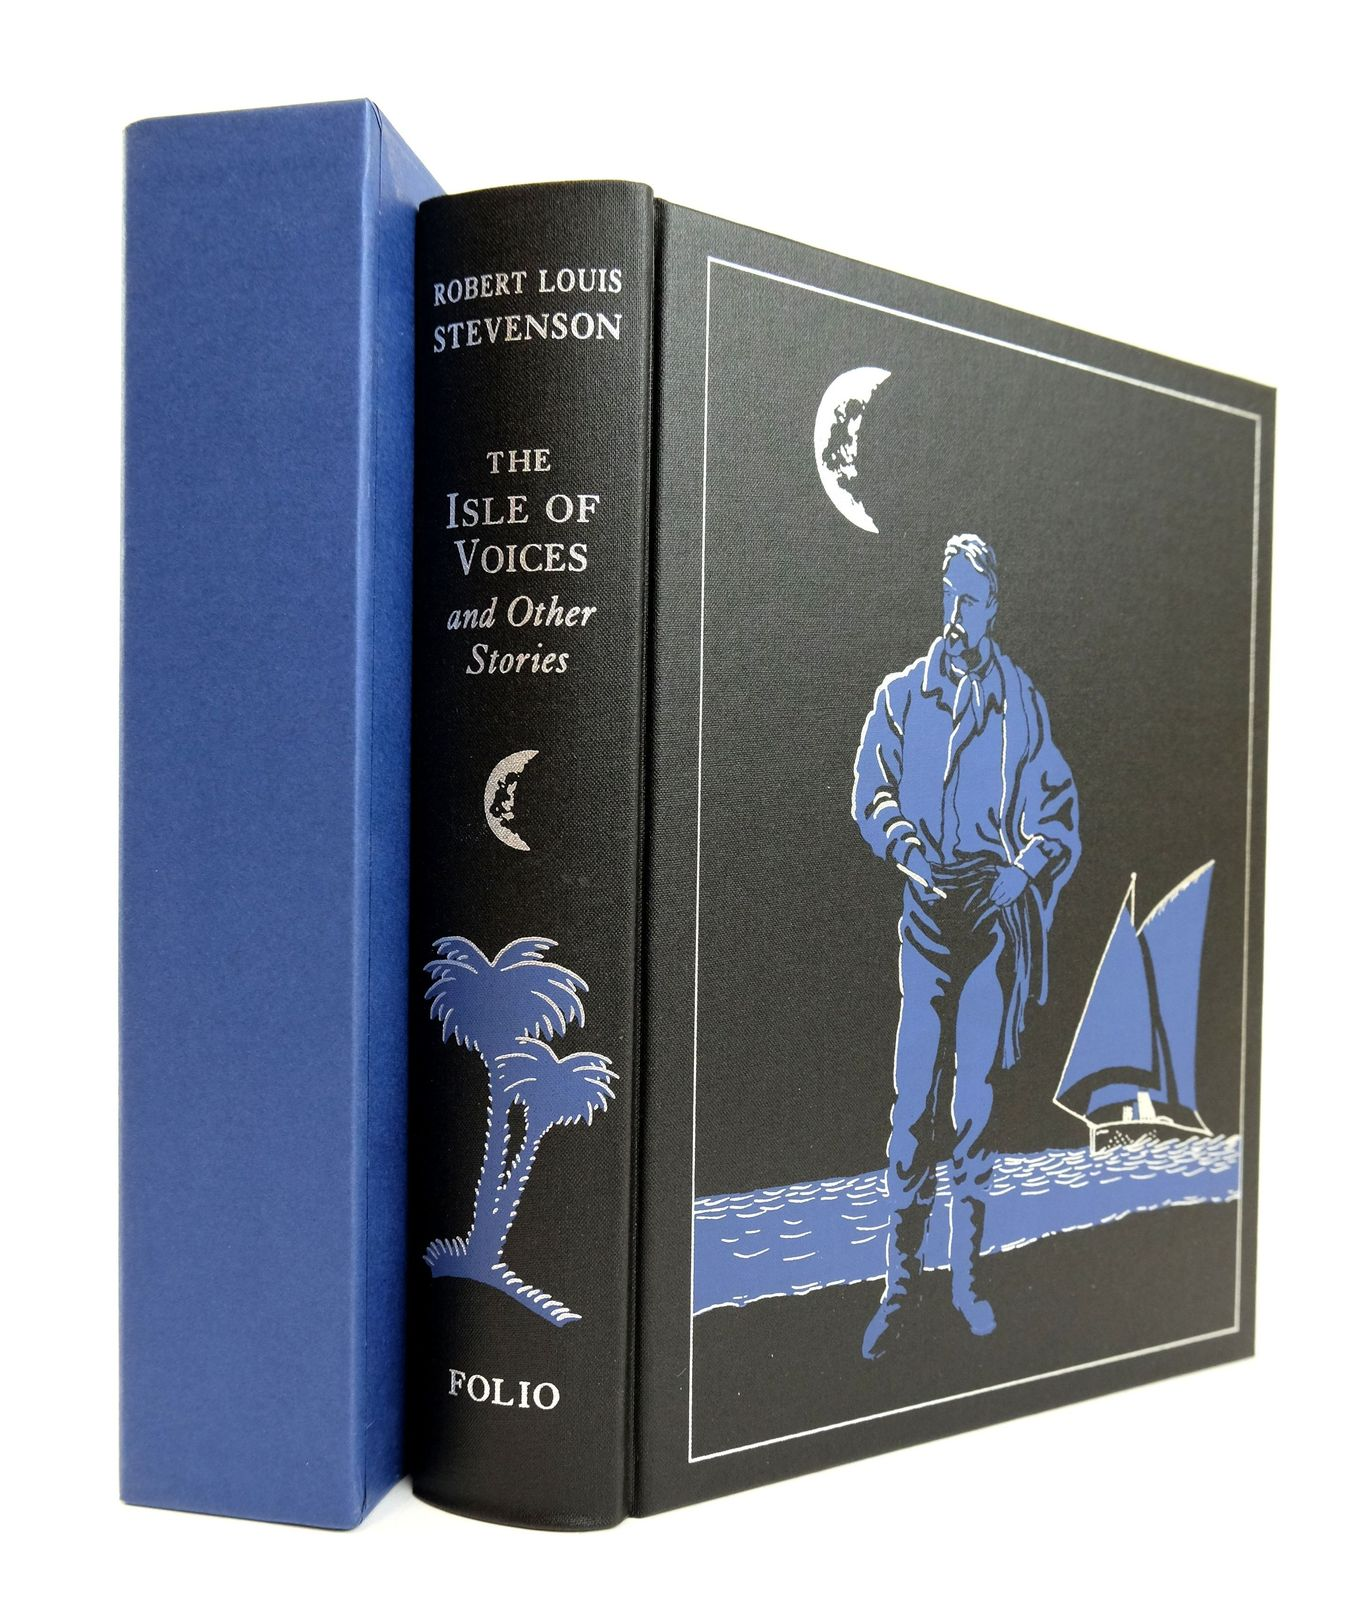 Photo of THE ISLE OF VOICES AND OTHER STORIES written by Stevenson, Robert Louis illustrated by Foreman, Michael published by Folio Society (STOCK CODE: 1818925)  for sale by Stella & Rose's Books